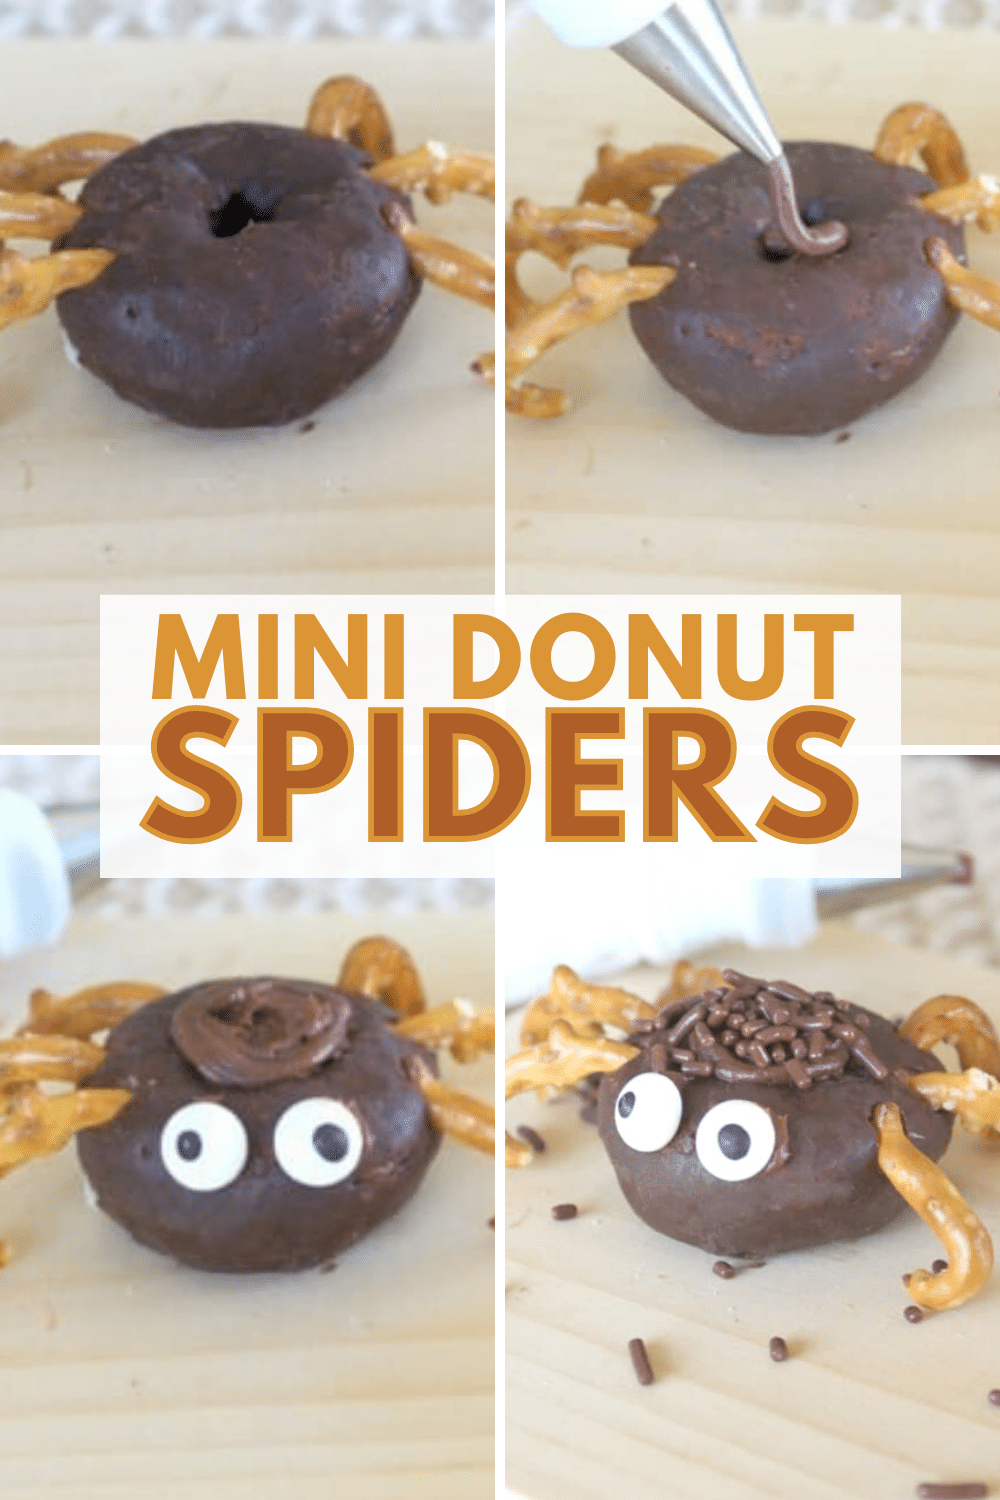 Such a fun and easy Halloween treat idea! This tutorial shows you how to make a spider using mini donuts and pretzels in just minutes. #funfood #Halloween #spidertreats #minidonuts via @wondermomwannab